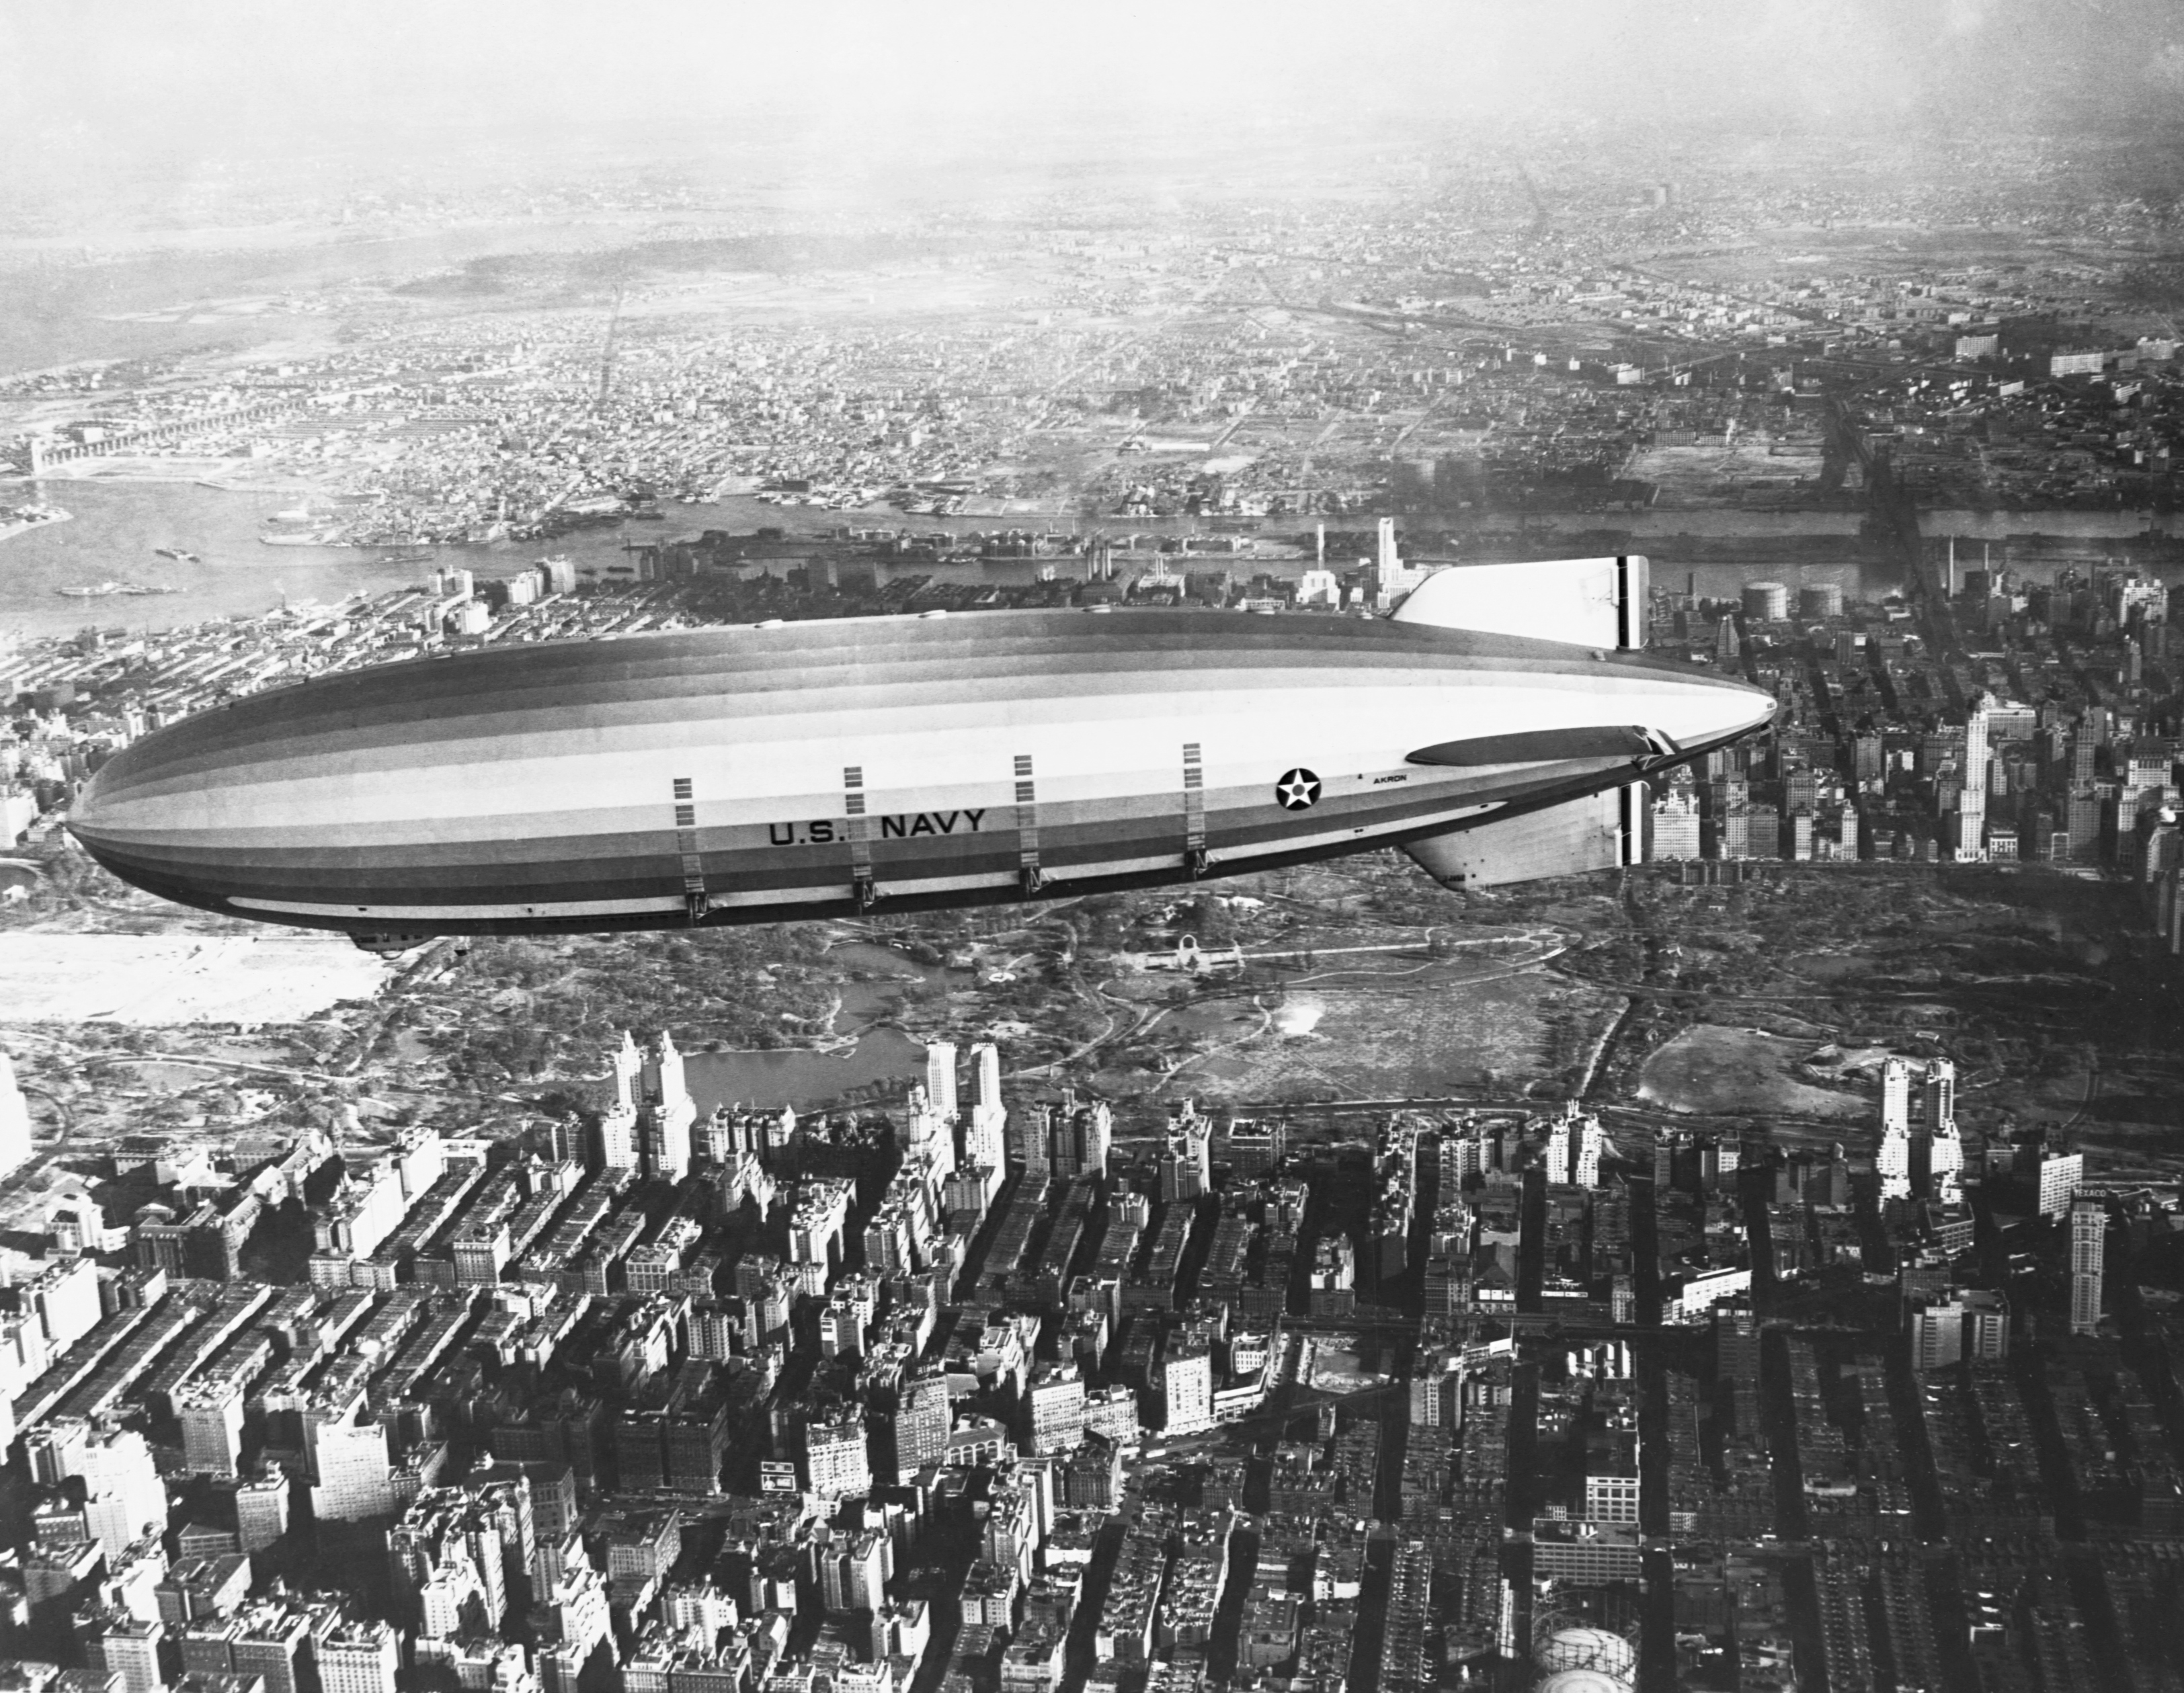 How a Navy Dirigible Became the World's Deadliest Airship